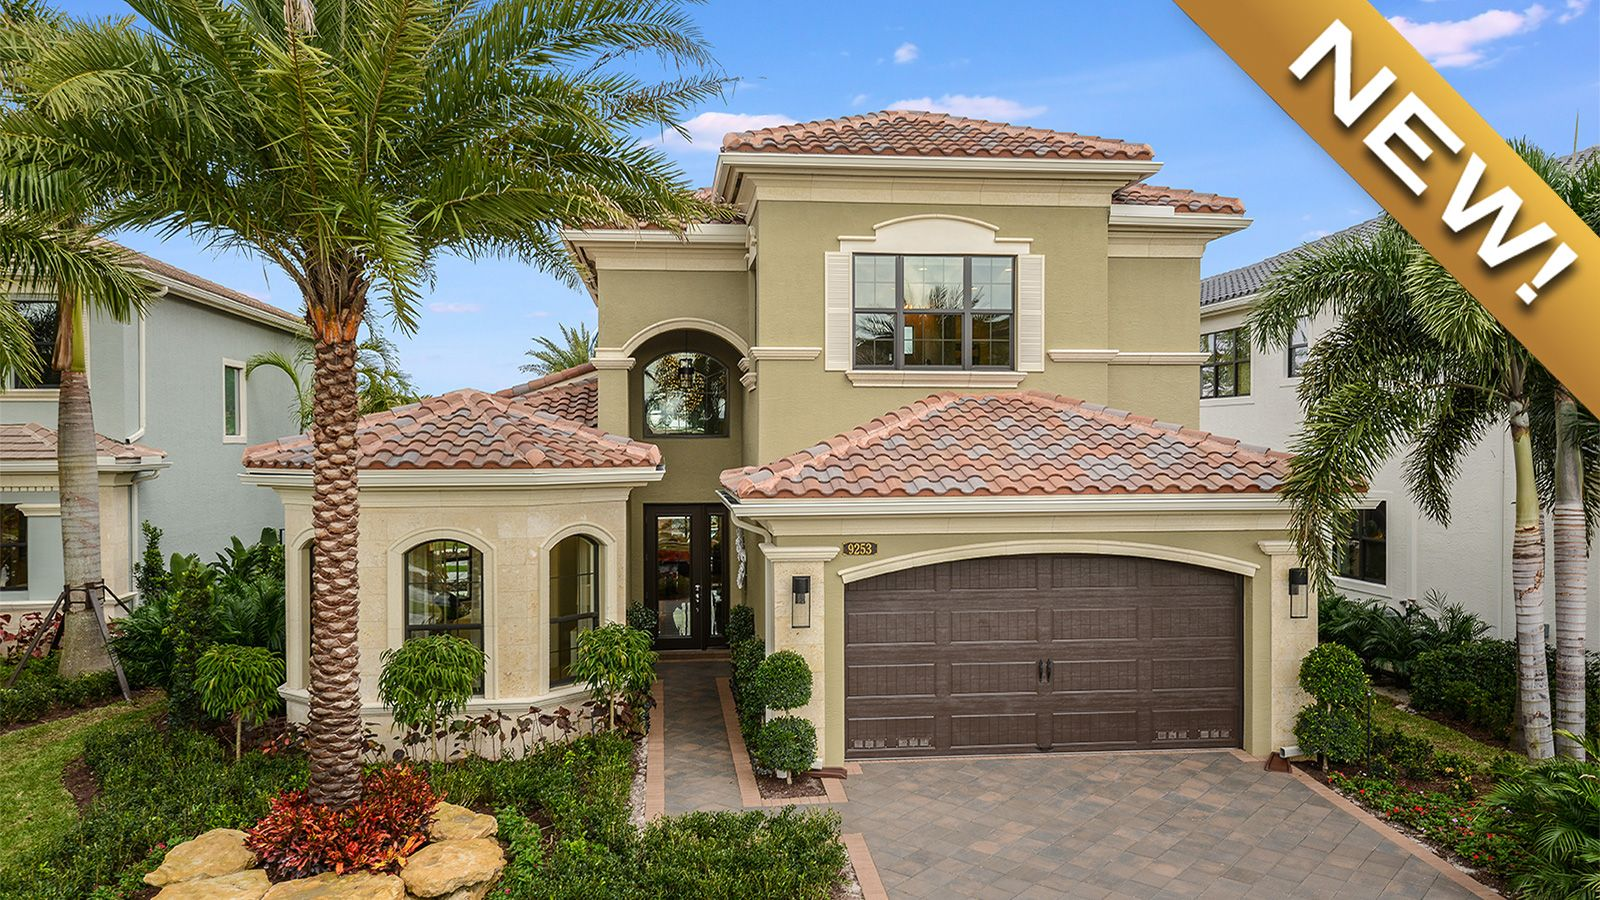 Single Family for Sale at Seven Bridges - Summit Grande 9275 Beaujolais Avenue Delray Beach, Florida 33446 United States